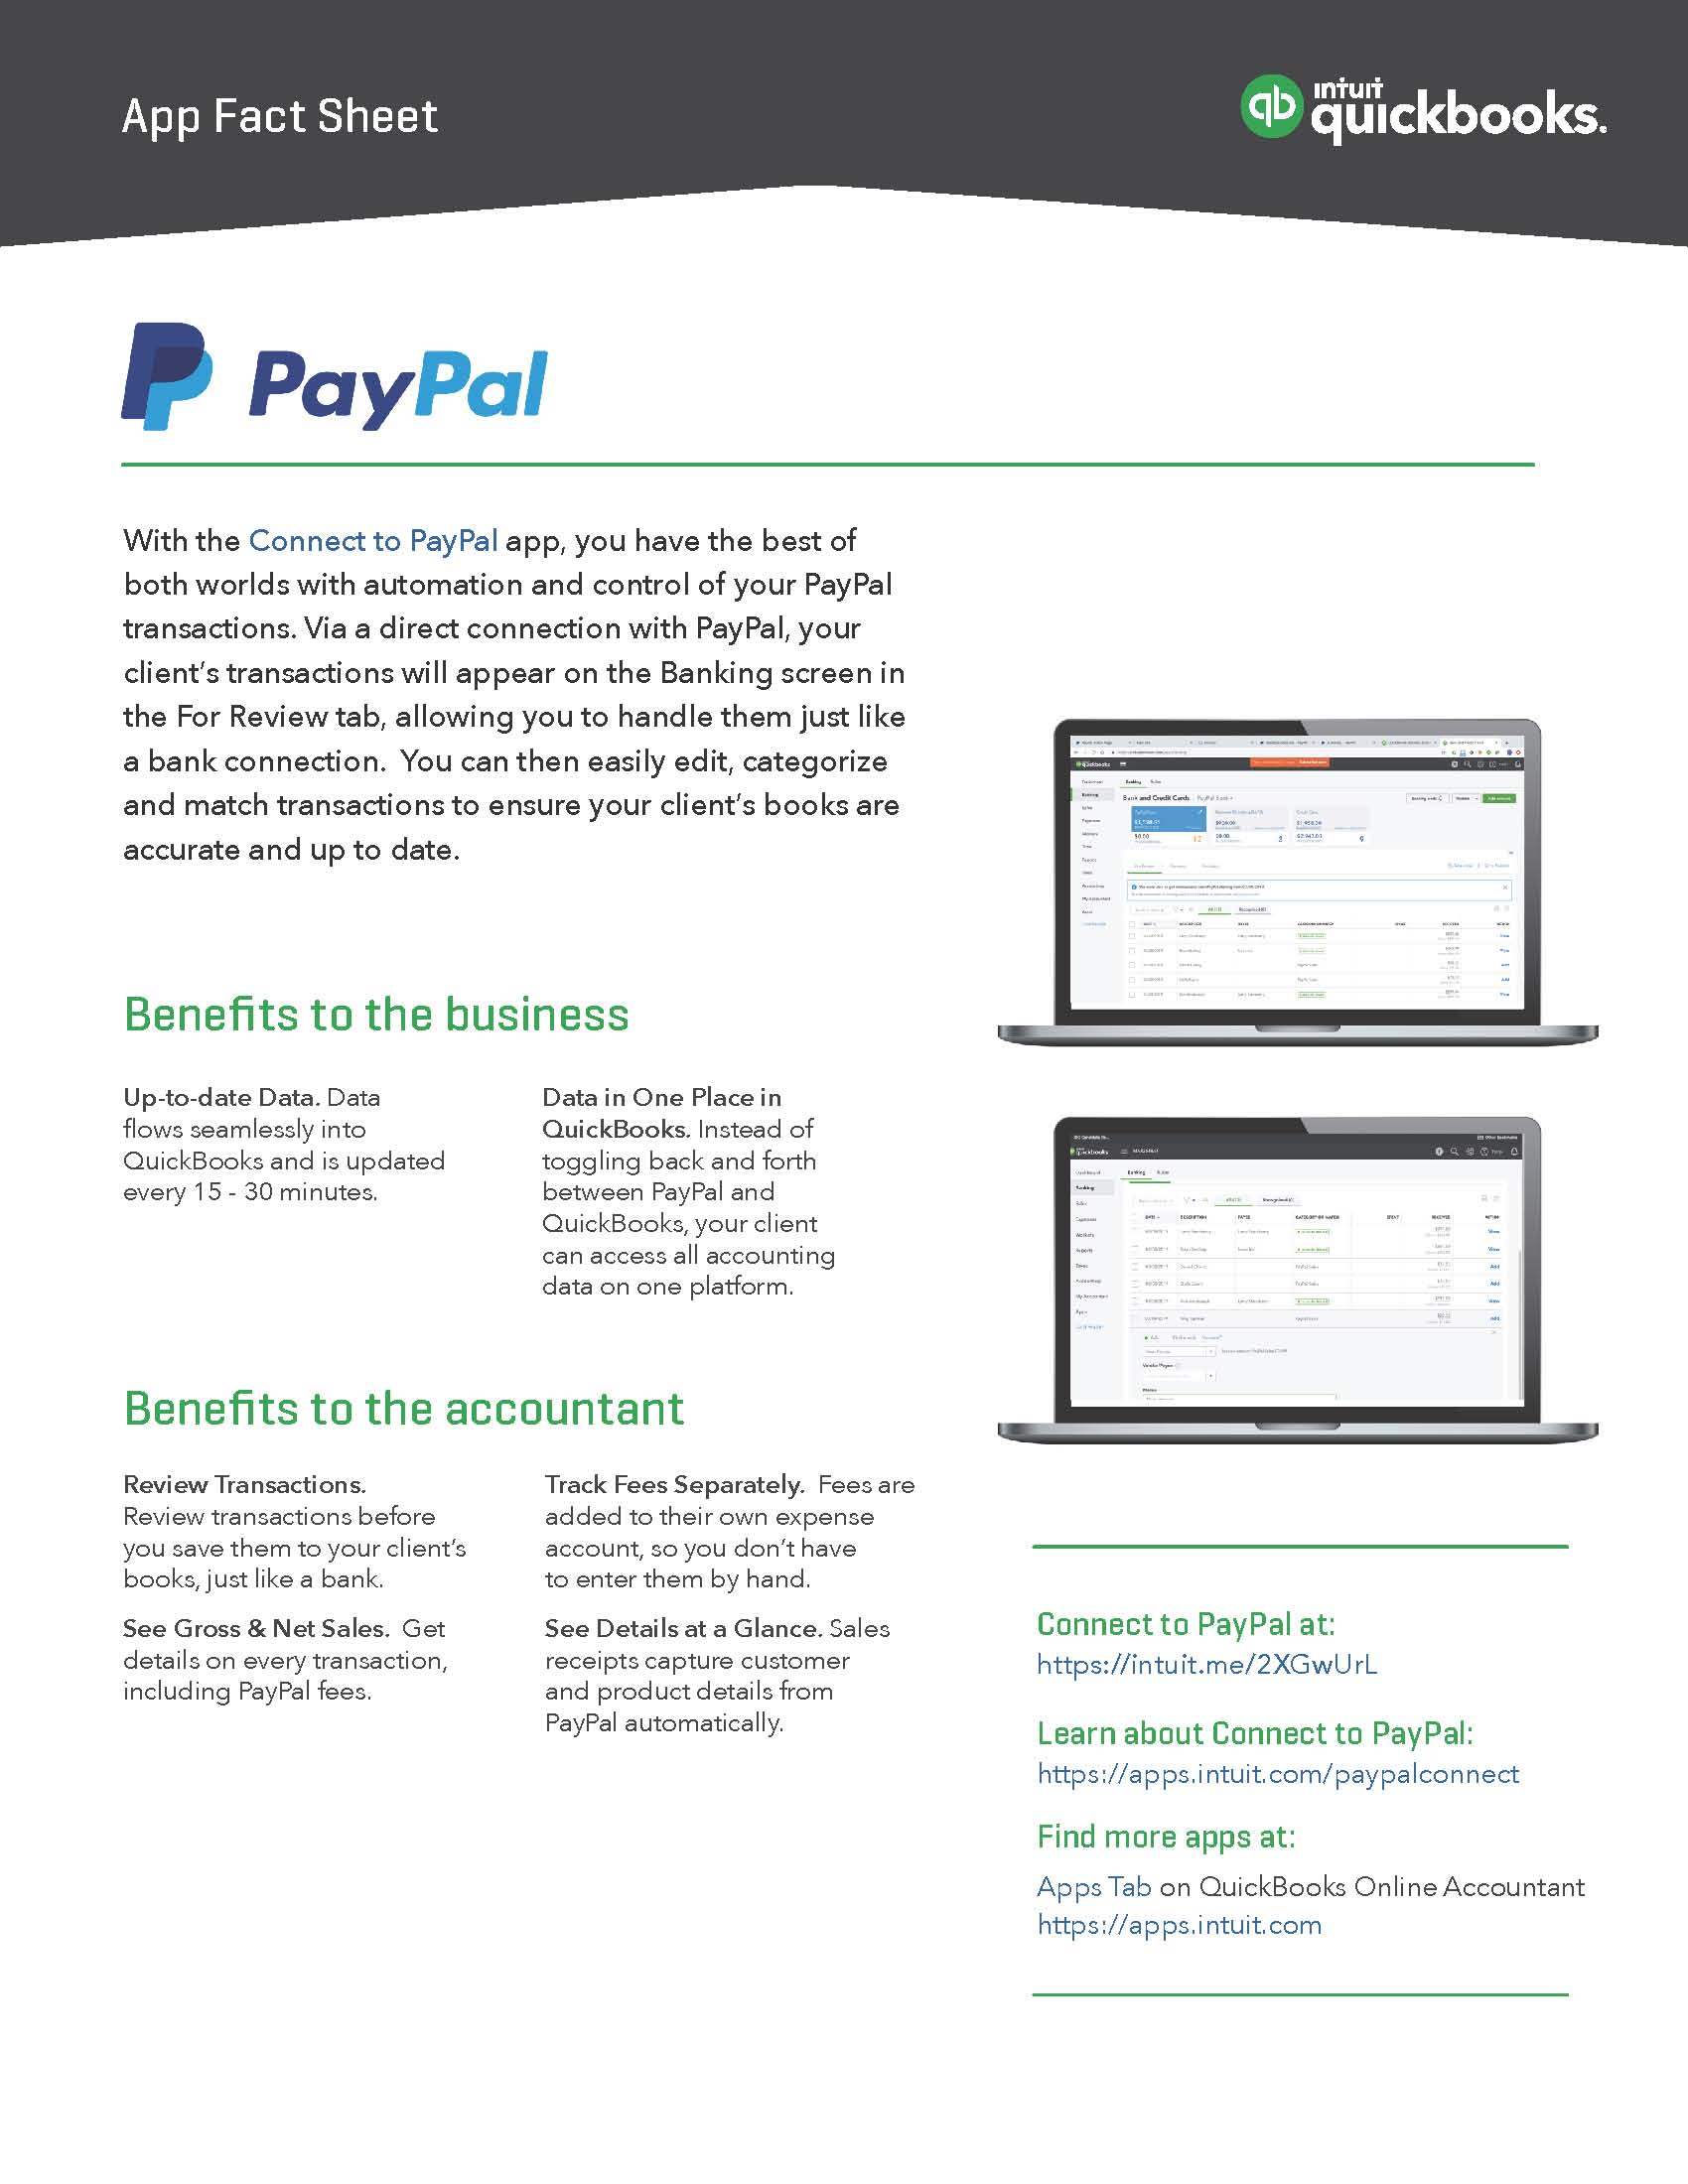 App Fact Sheet: Connect to PayPal - Firm of the Future